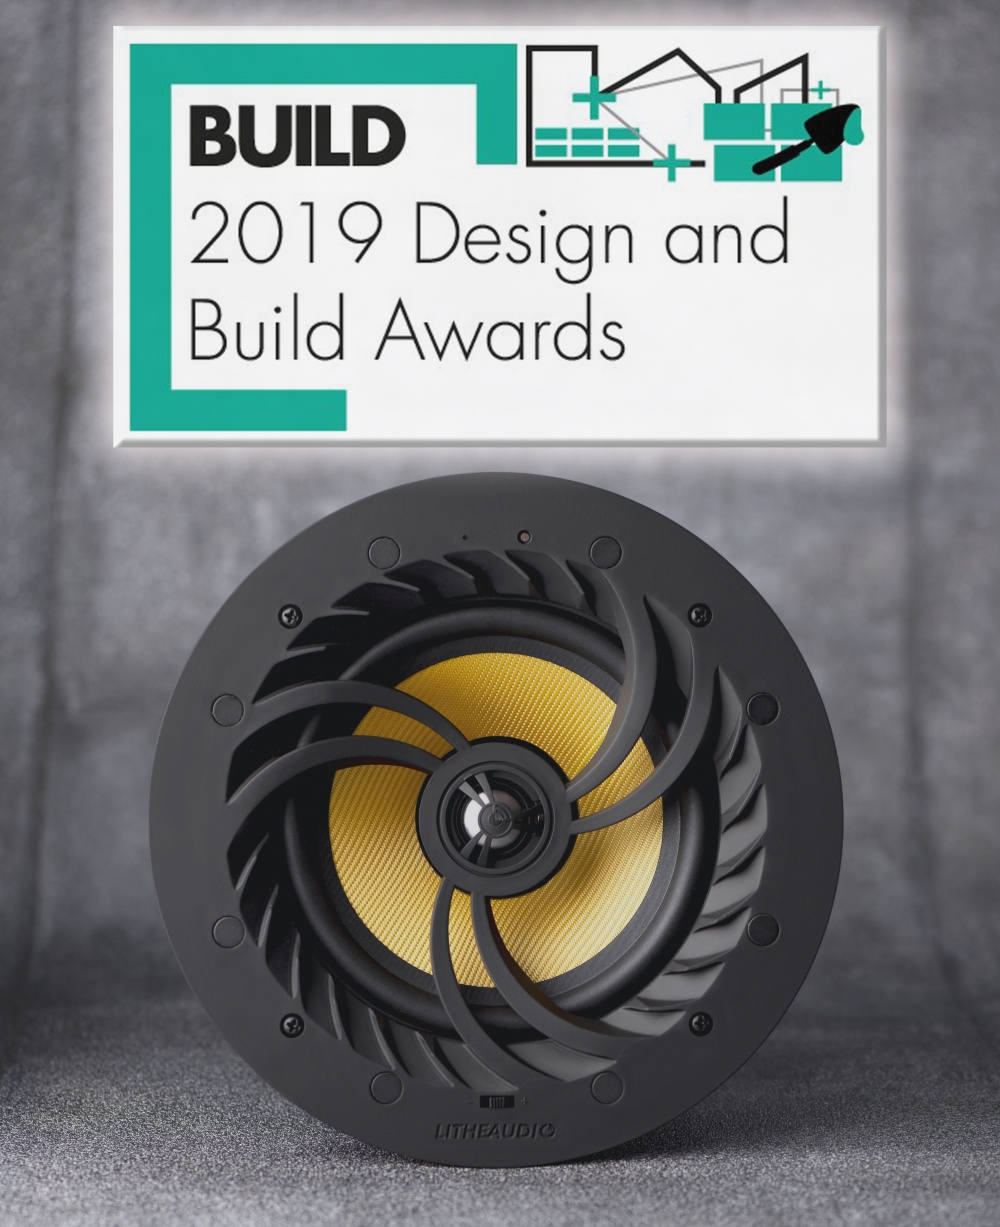 Lithe Audio Wins the 2019 Design and Build Awards